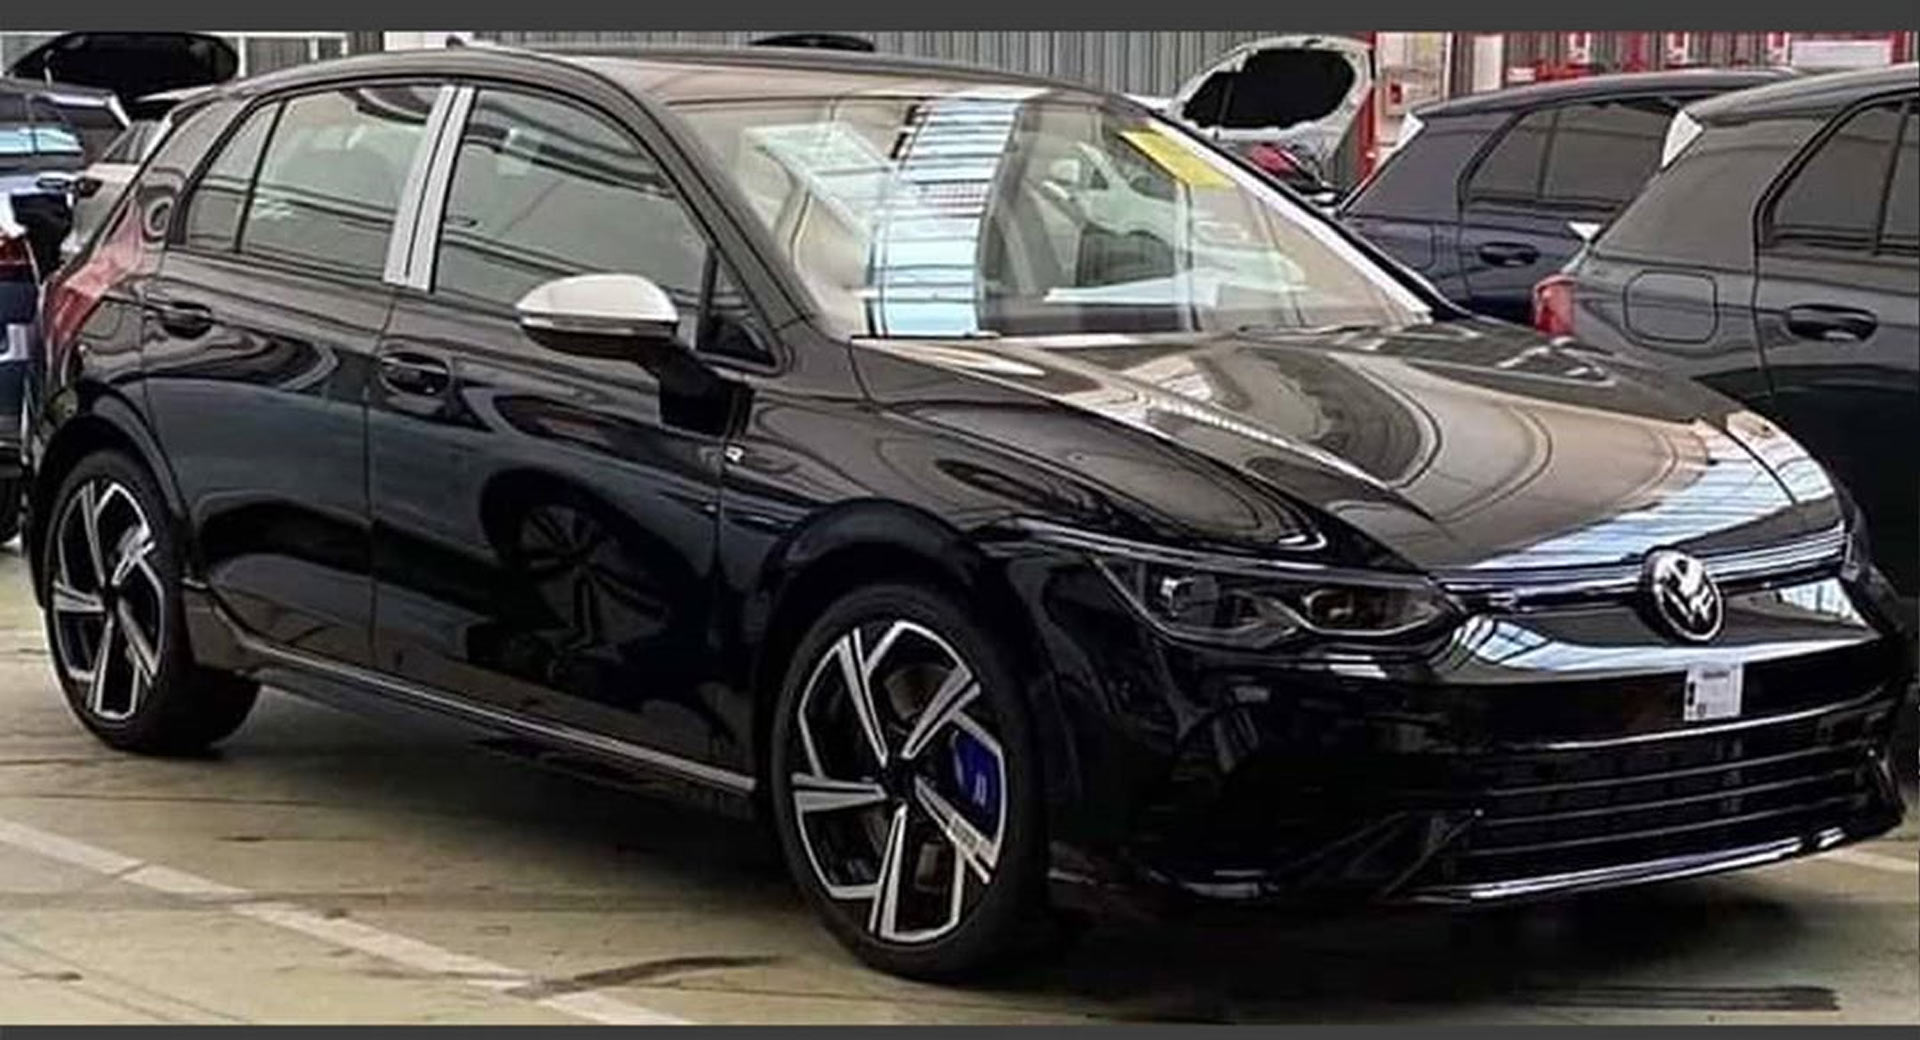 2021 VW Golf R Caught Undisguised, Hot Hatch Could Have Around 328 HP | Carscoops